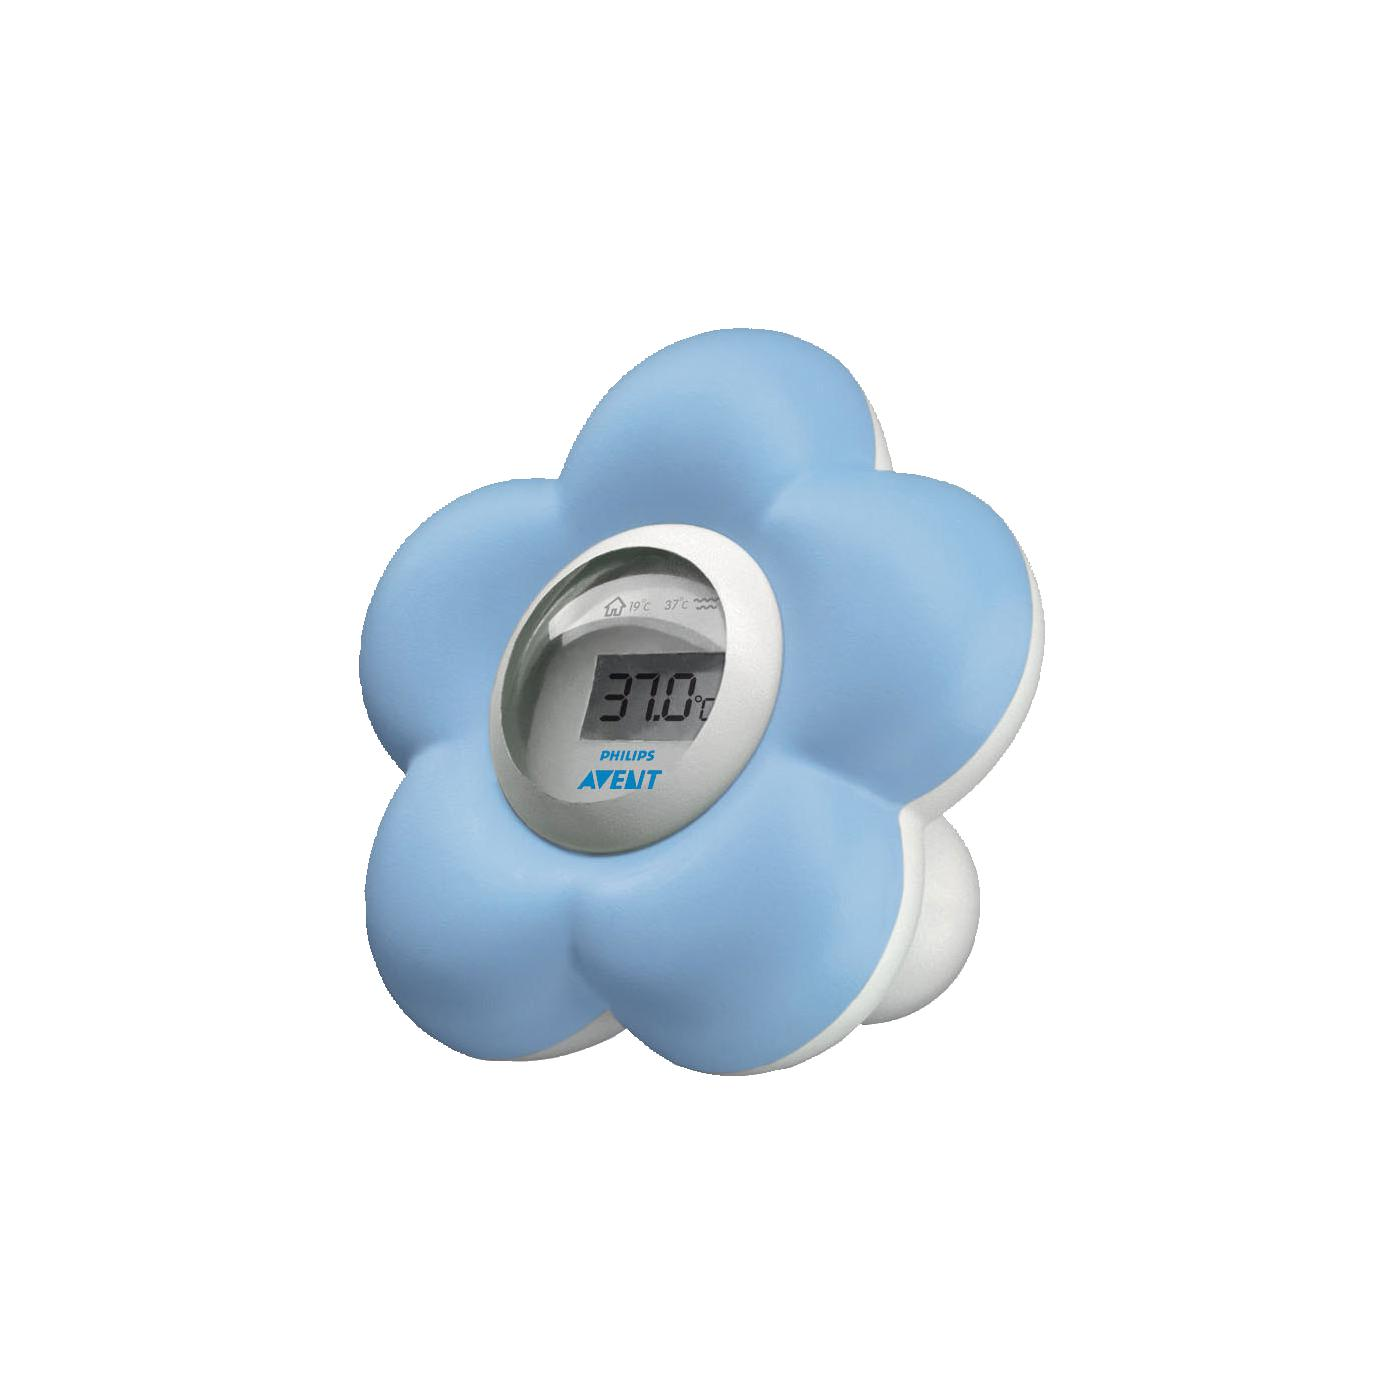 Raum Thermometer Digitales Bad Raumthermometer